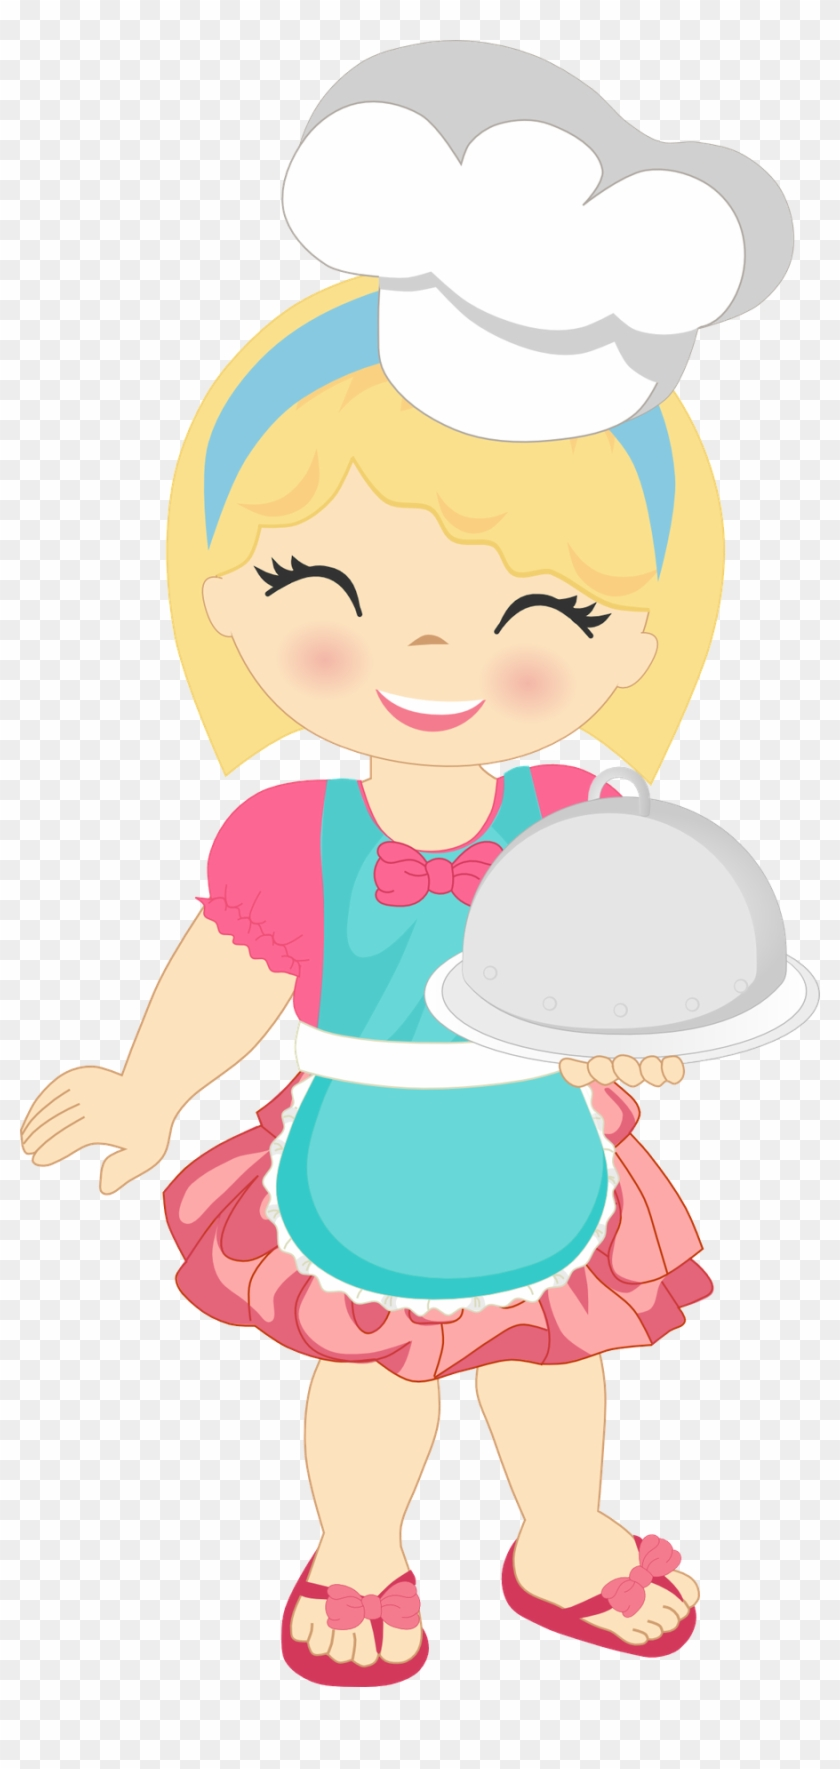 Chef Animado, Cooking Clipart, Food Clipart, Cute Clipart.